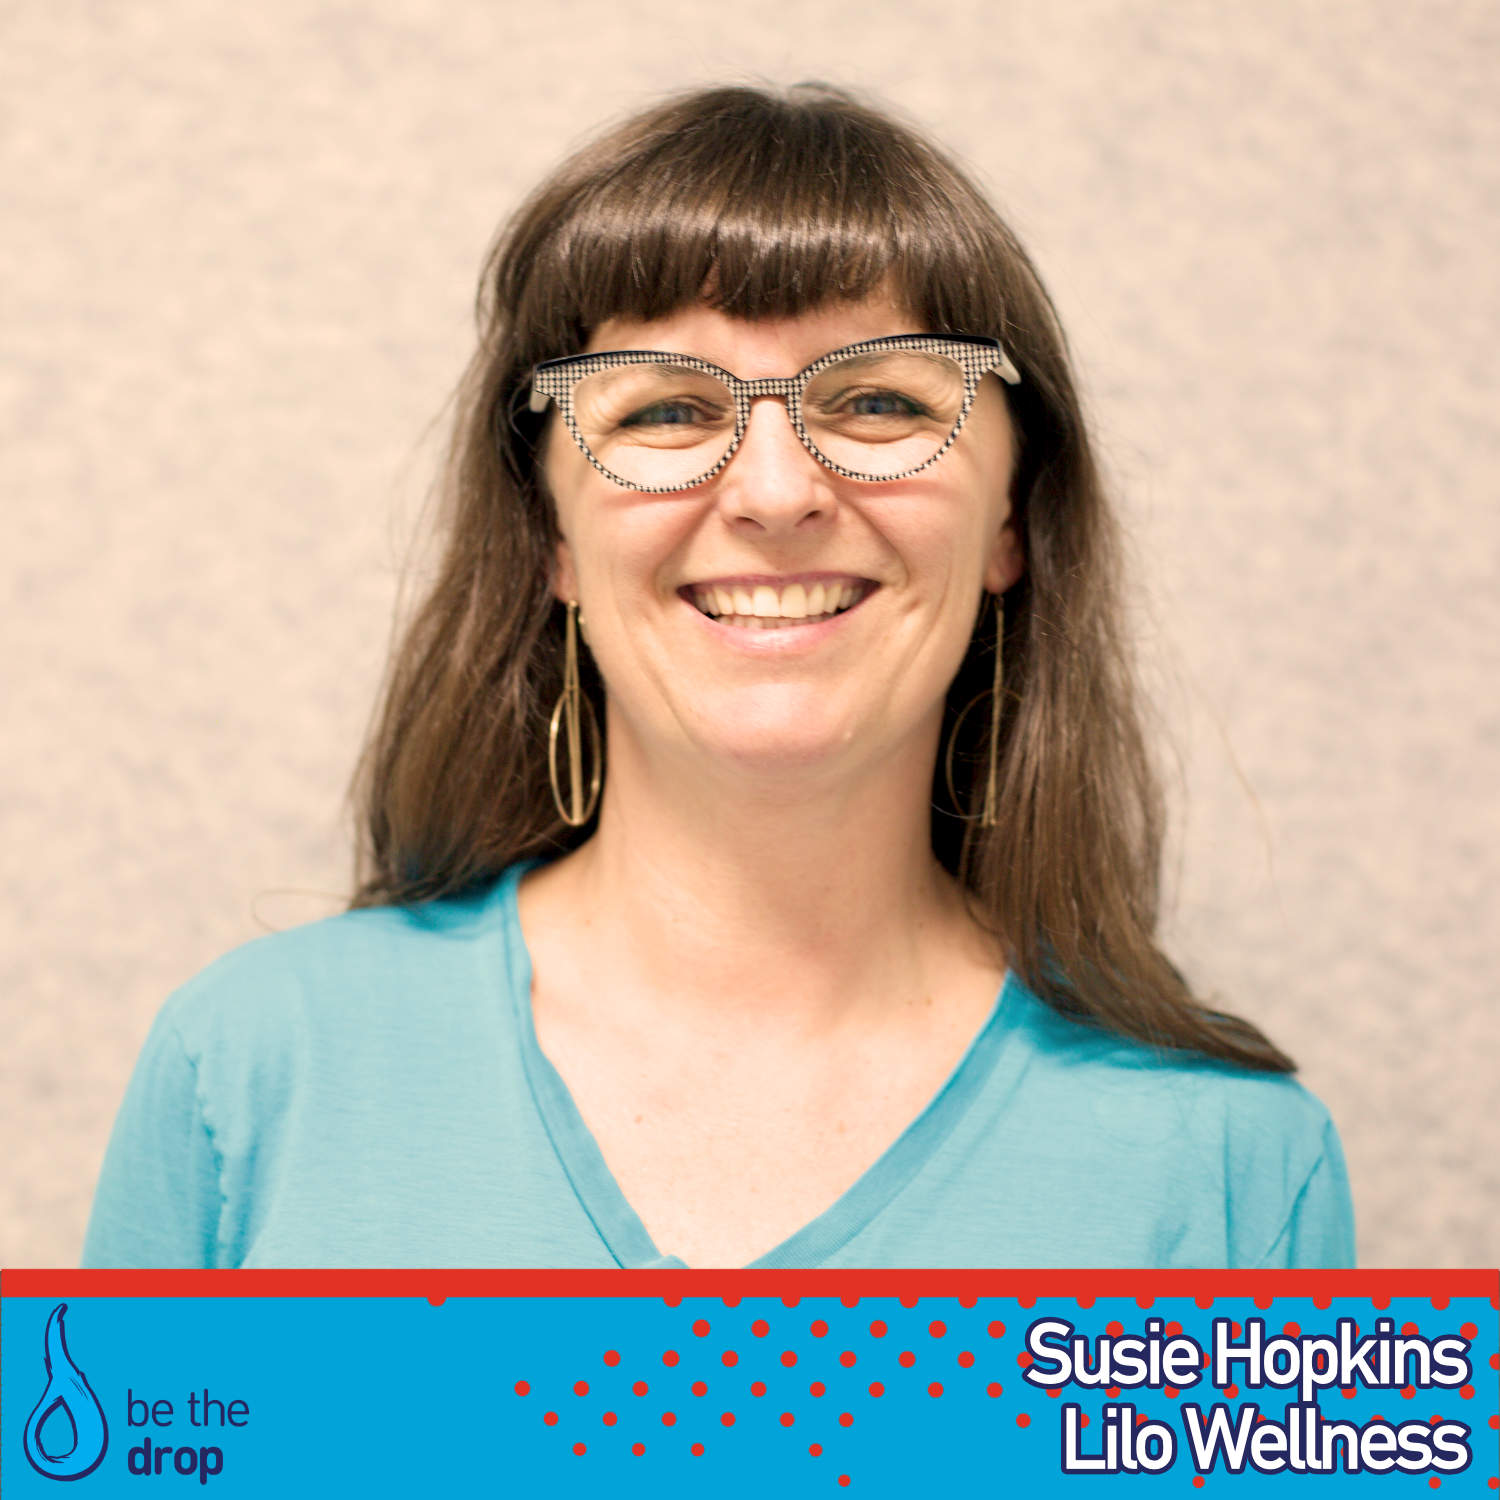 Susie Hopkins discusses stress management